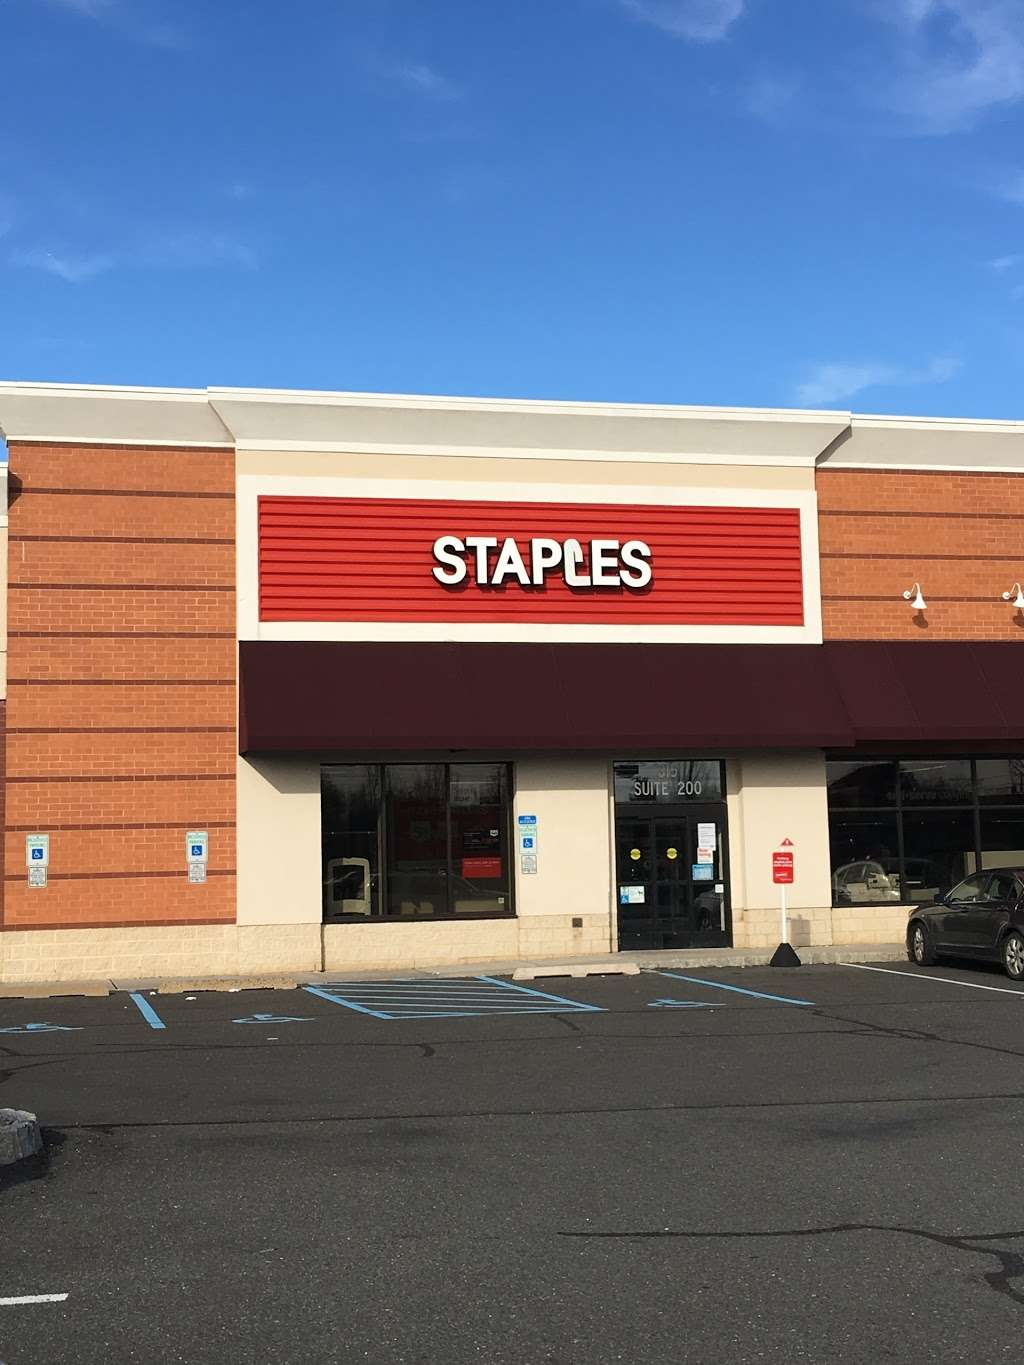 Staples - furniture store  | Photo 10 of 10 | Address: 315 US Hwy 206 Suite 200, Hillsborough Township, NJ 08844, USA | Phone: (908) 281-6896